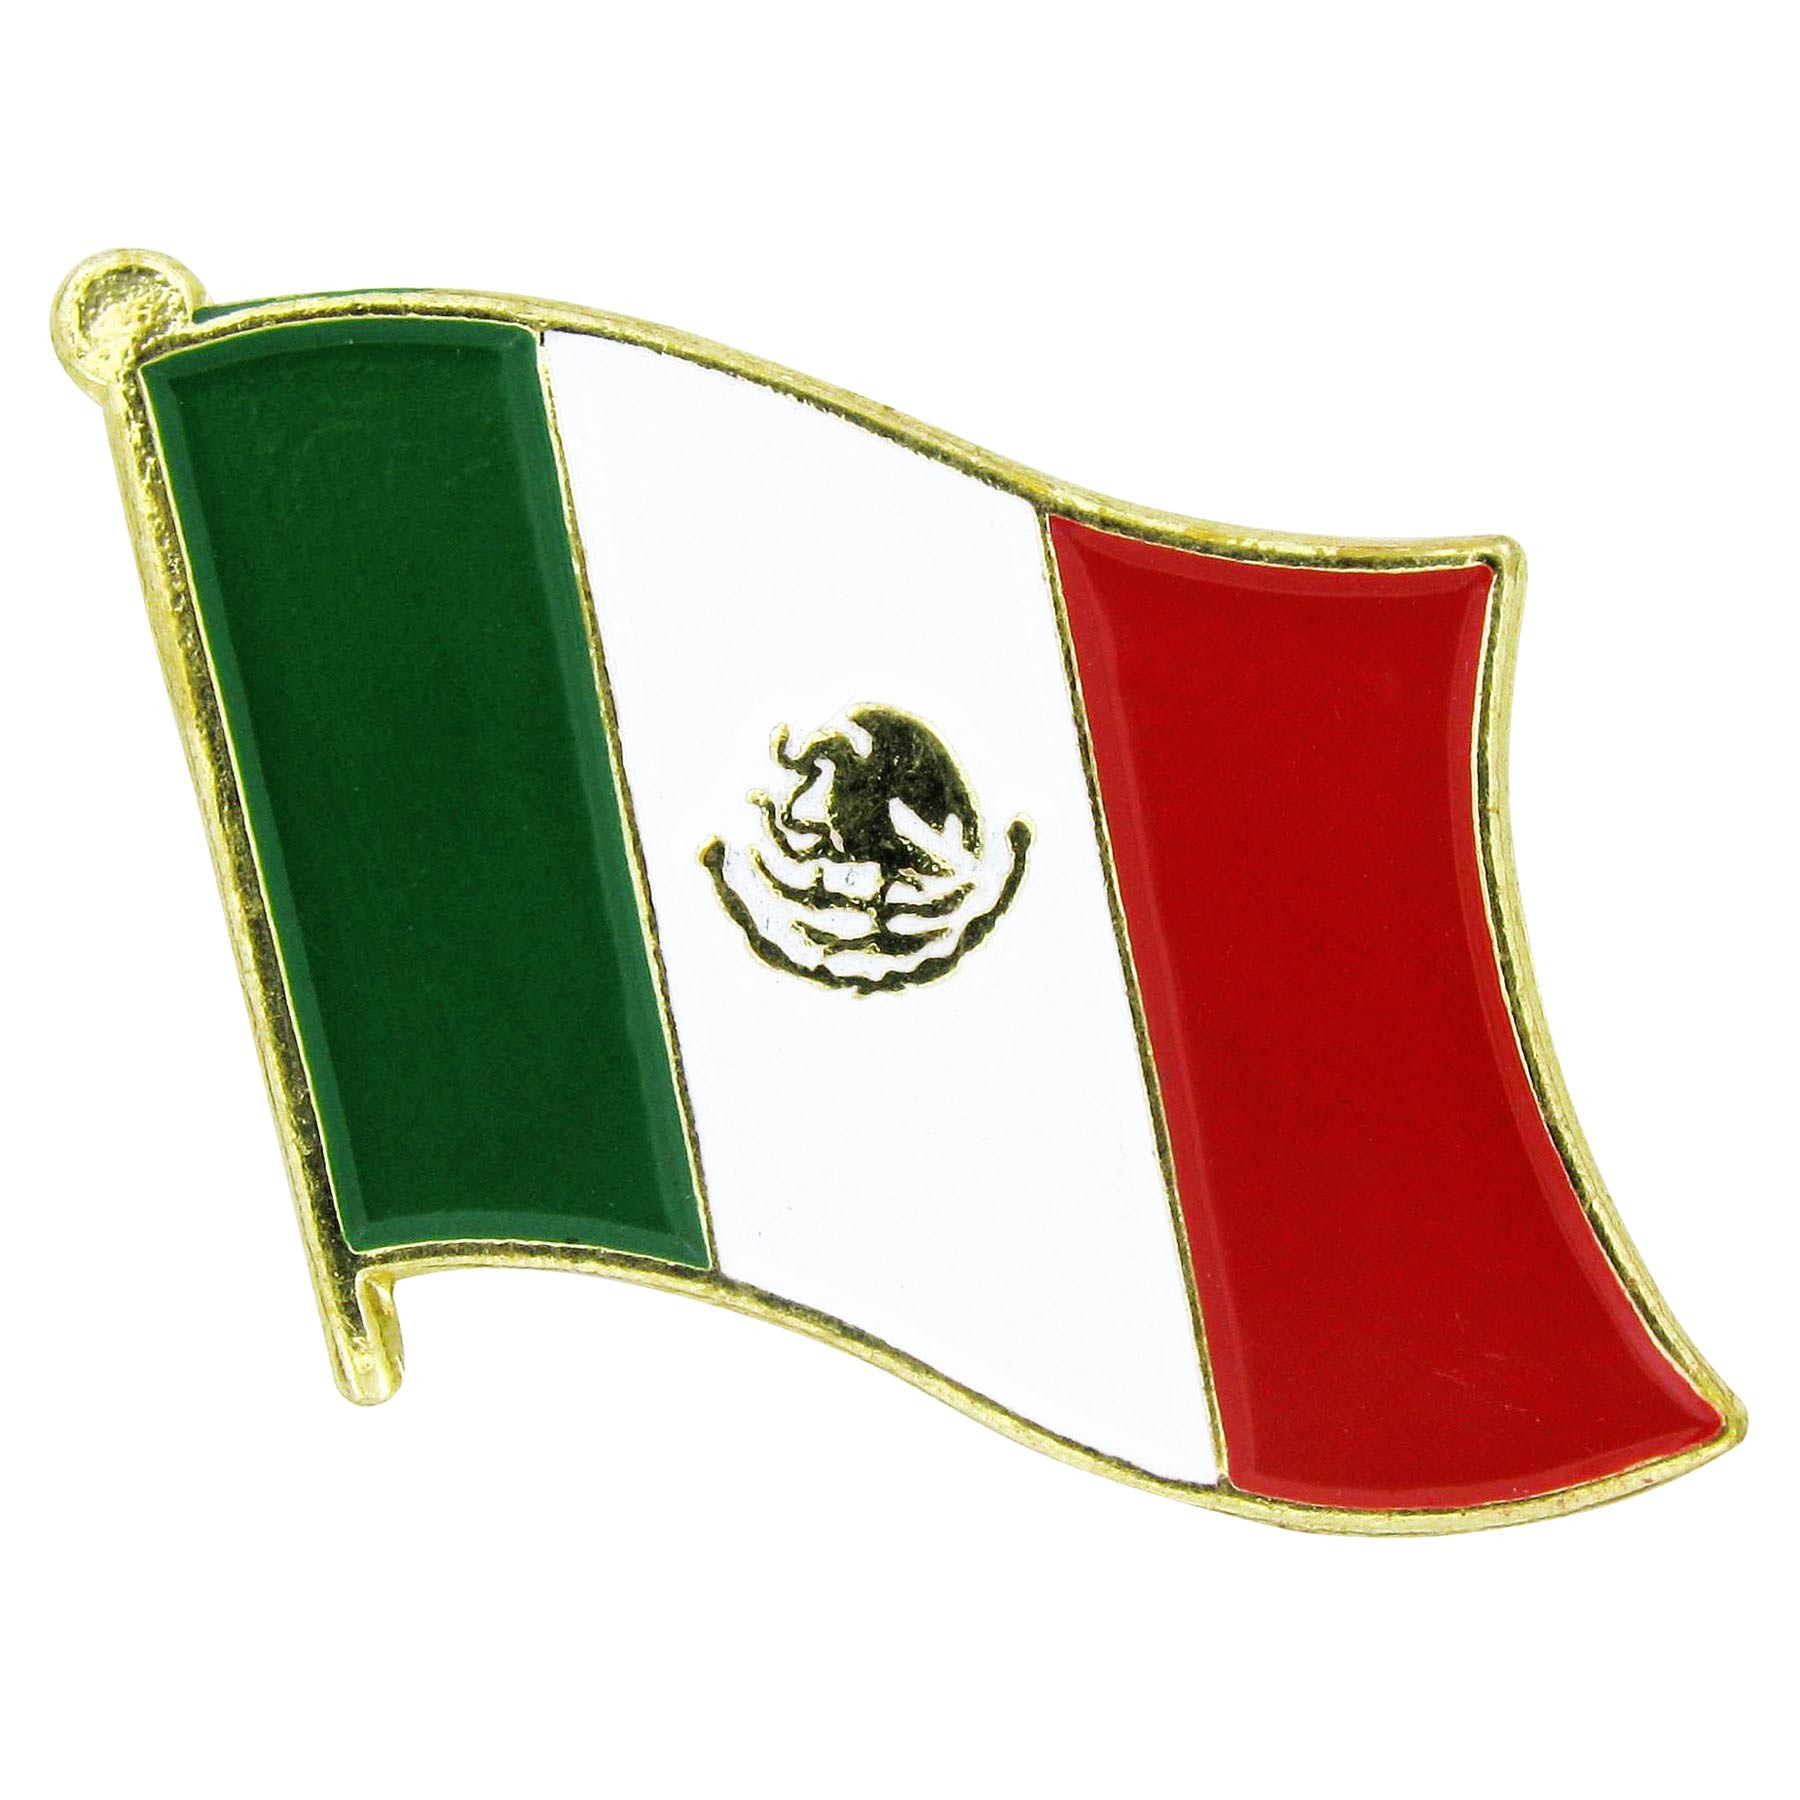 United states mexico flag clipart graphic black and white download United states mexico flag clipart - ClipartFest graphic black and white download